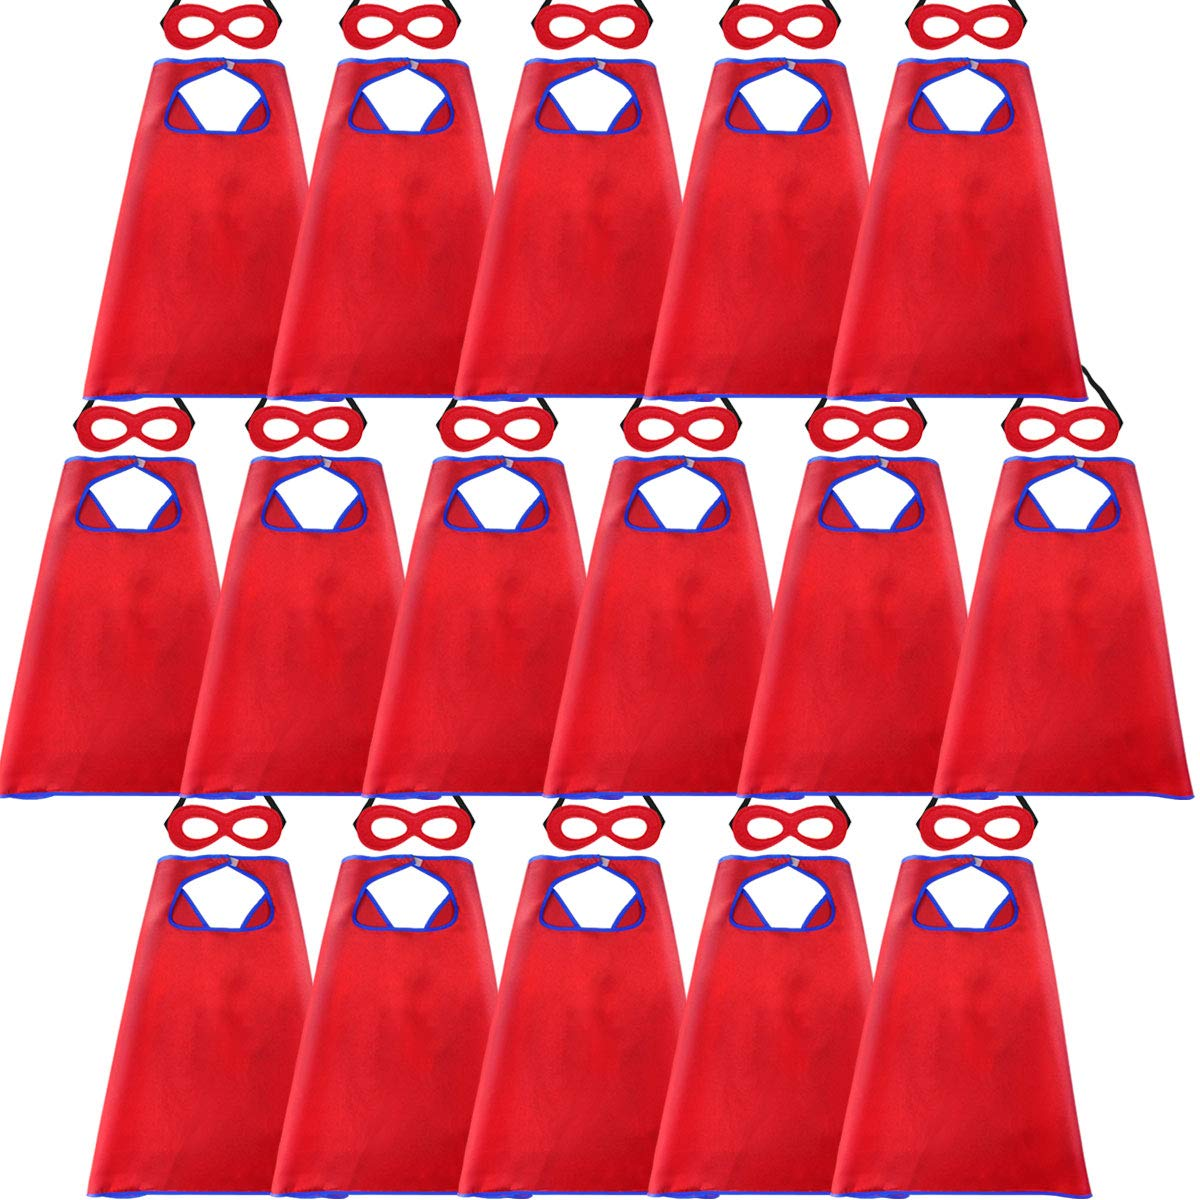 Superhero-Capes for Kids Bulk with Masks - Boys Girls Super-Hero Dress Up Party, 16 Pack (Red)